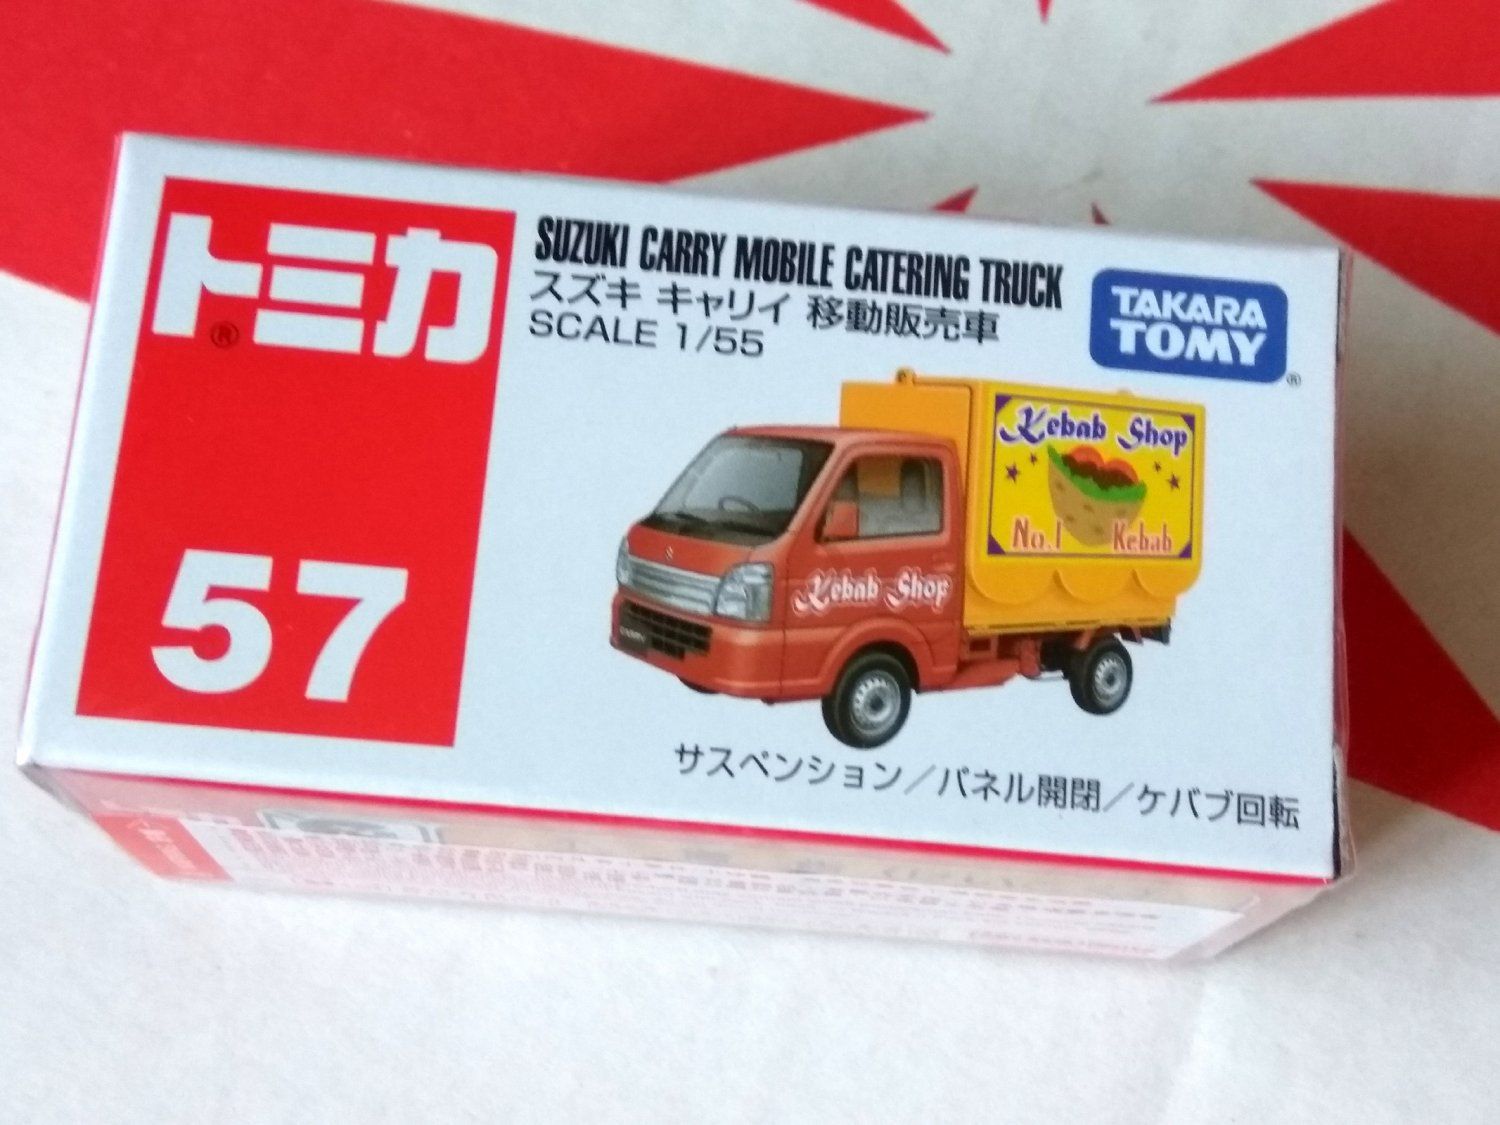 Takara Tomy Tomica  #57 Suzuki Carry Mobile Catering Truck Toy Scale 1/55 Diecast Car